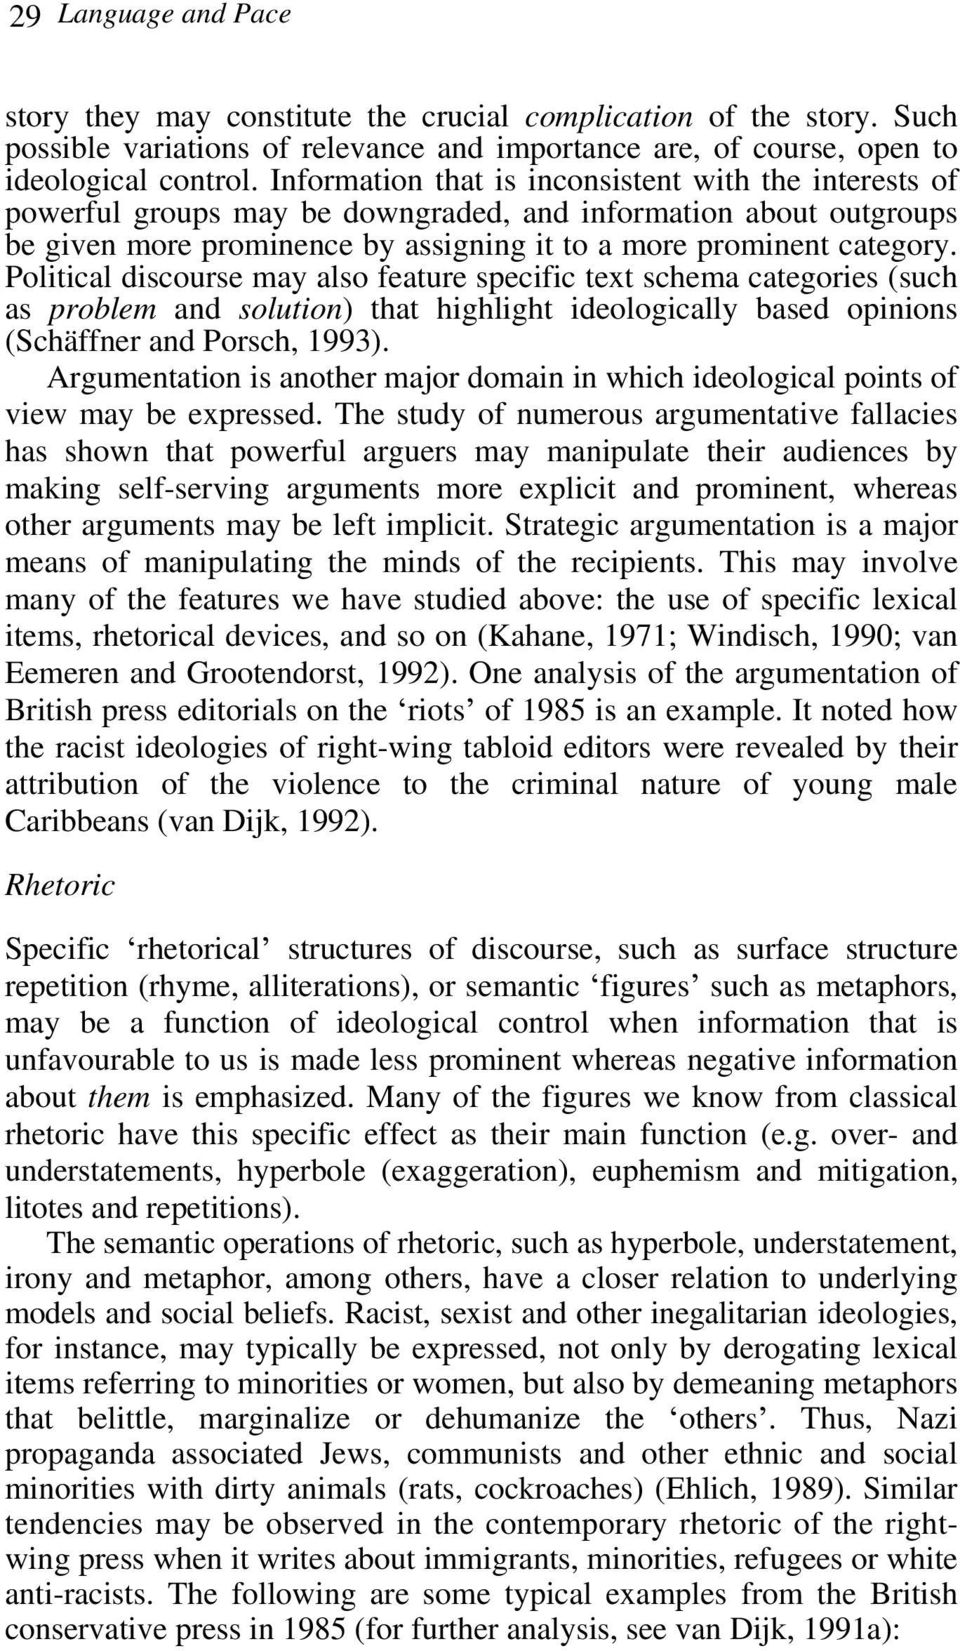 Political discourse may also feature specific text schema categories (such as problem and solution) that highlight ideologically based opinions (Schäffner and Porsch, 1993).